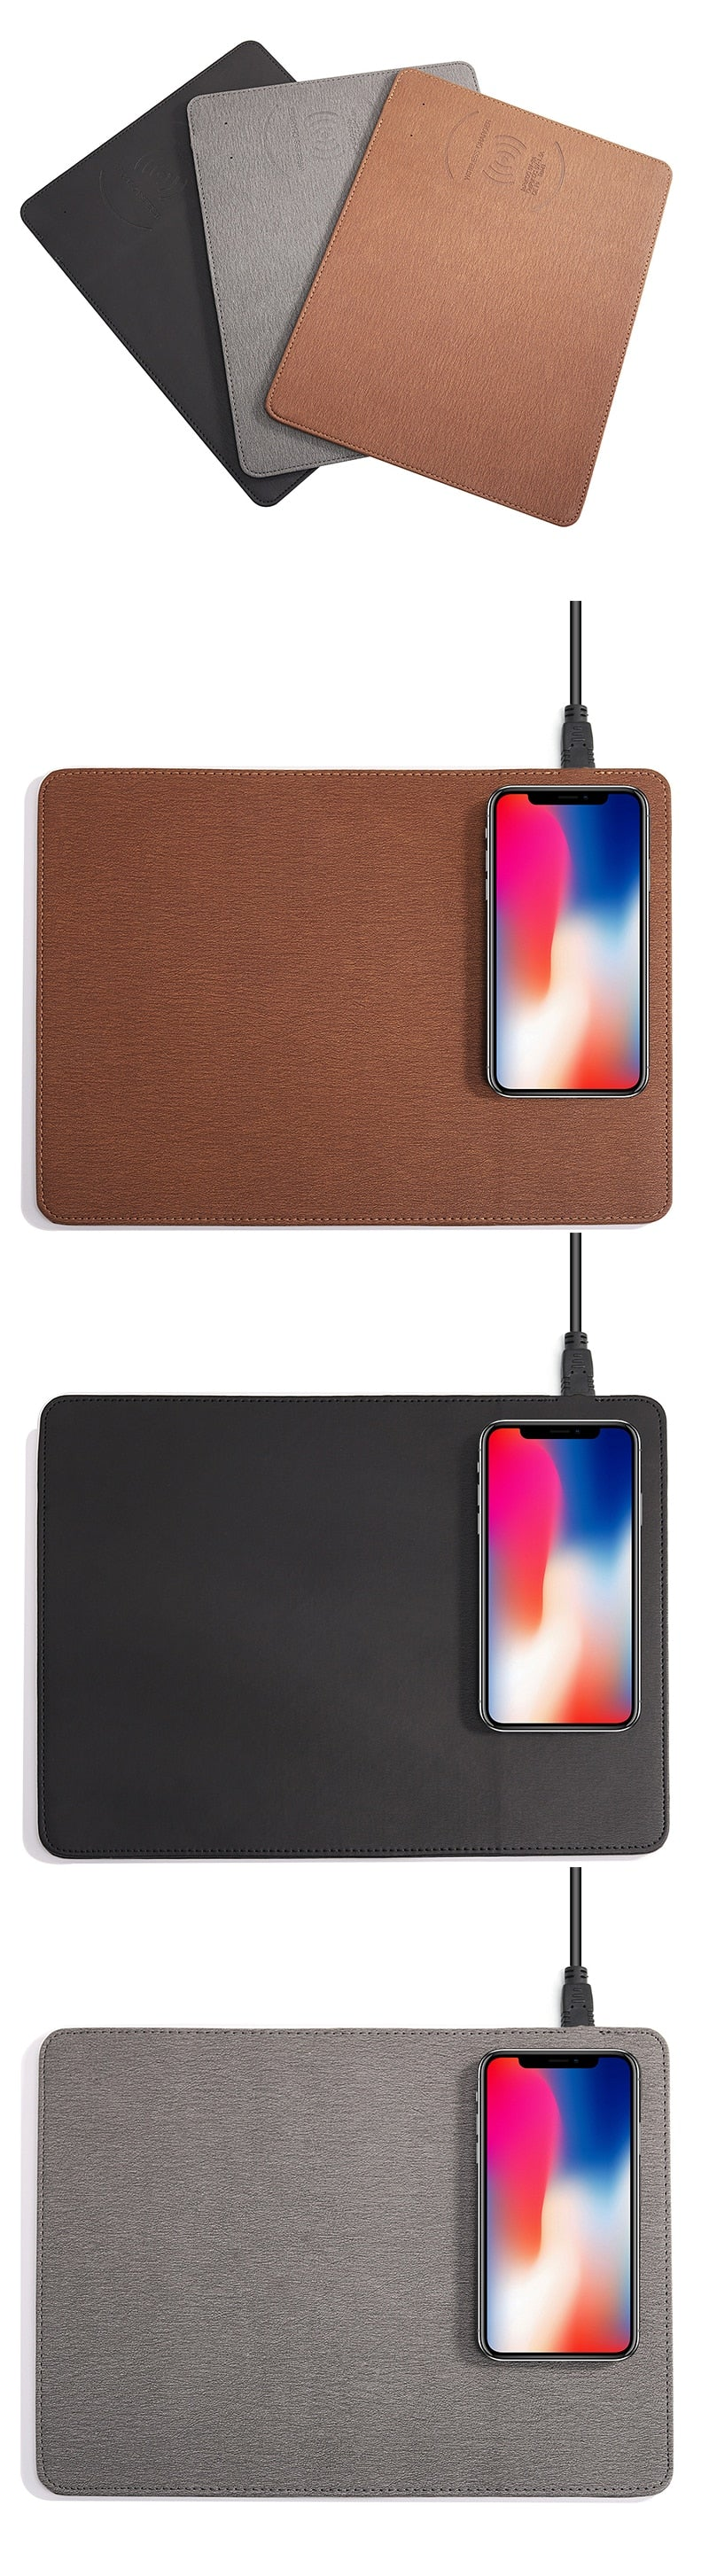 Mobile Phone Wireless Charging Mouse Pad